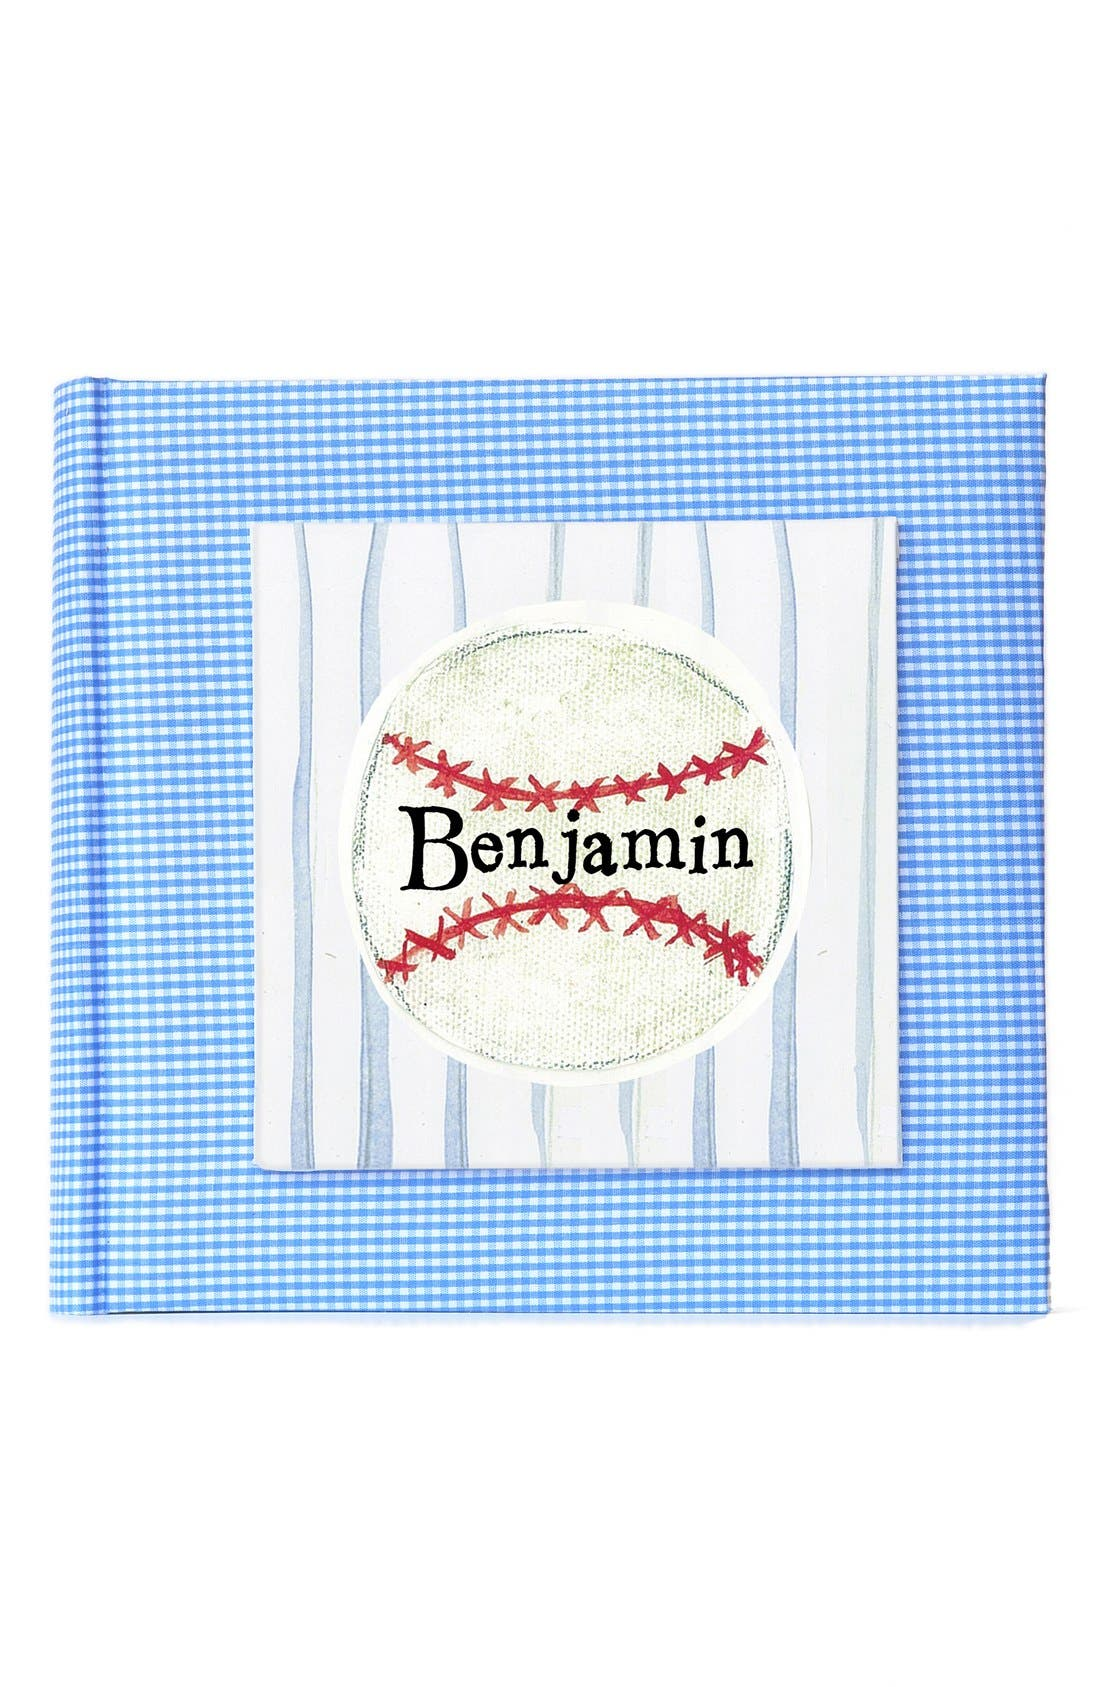 'Baseball' Personalized Photo Album,                             Main thumbnail 1, color,                             Blue